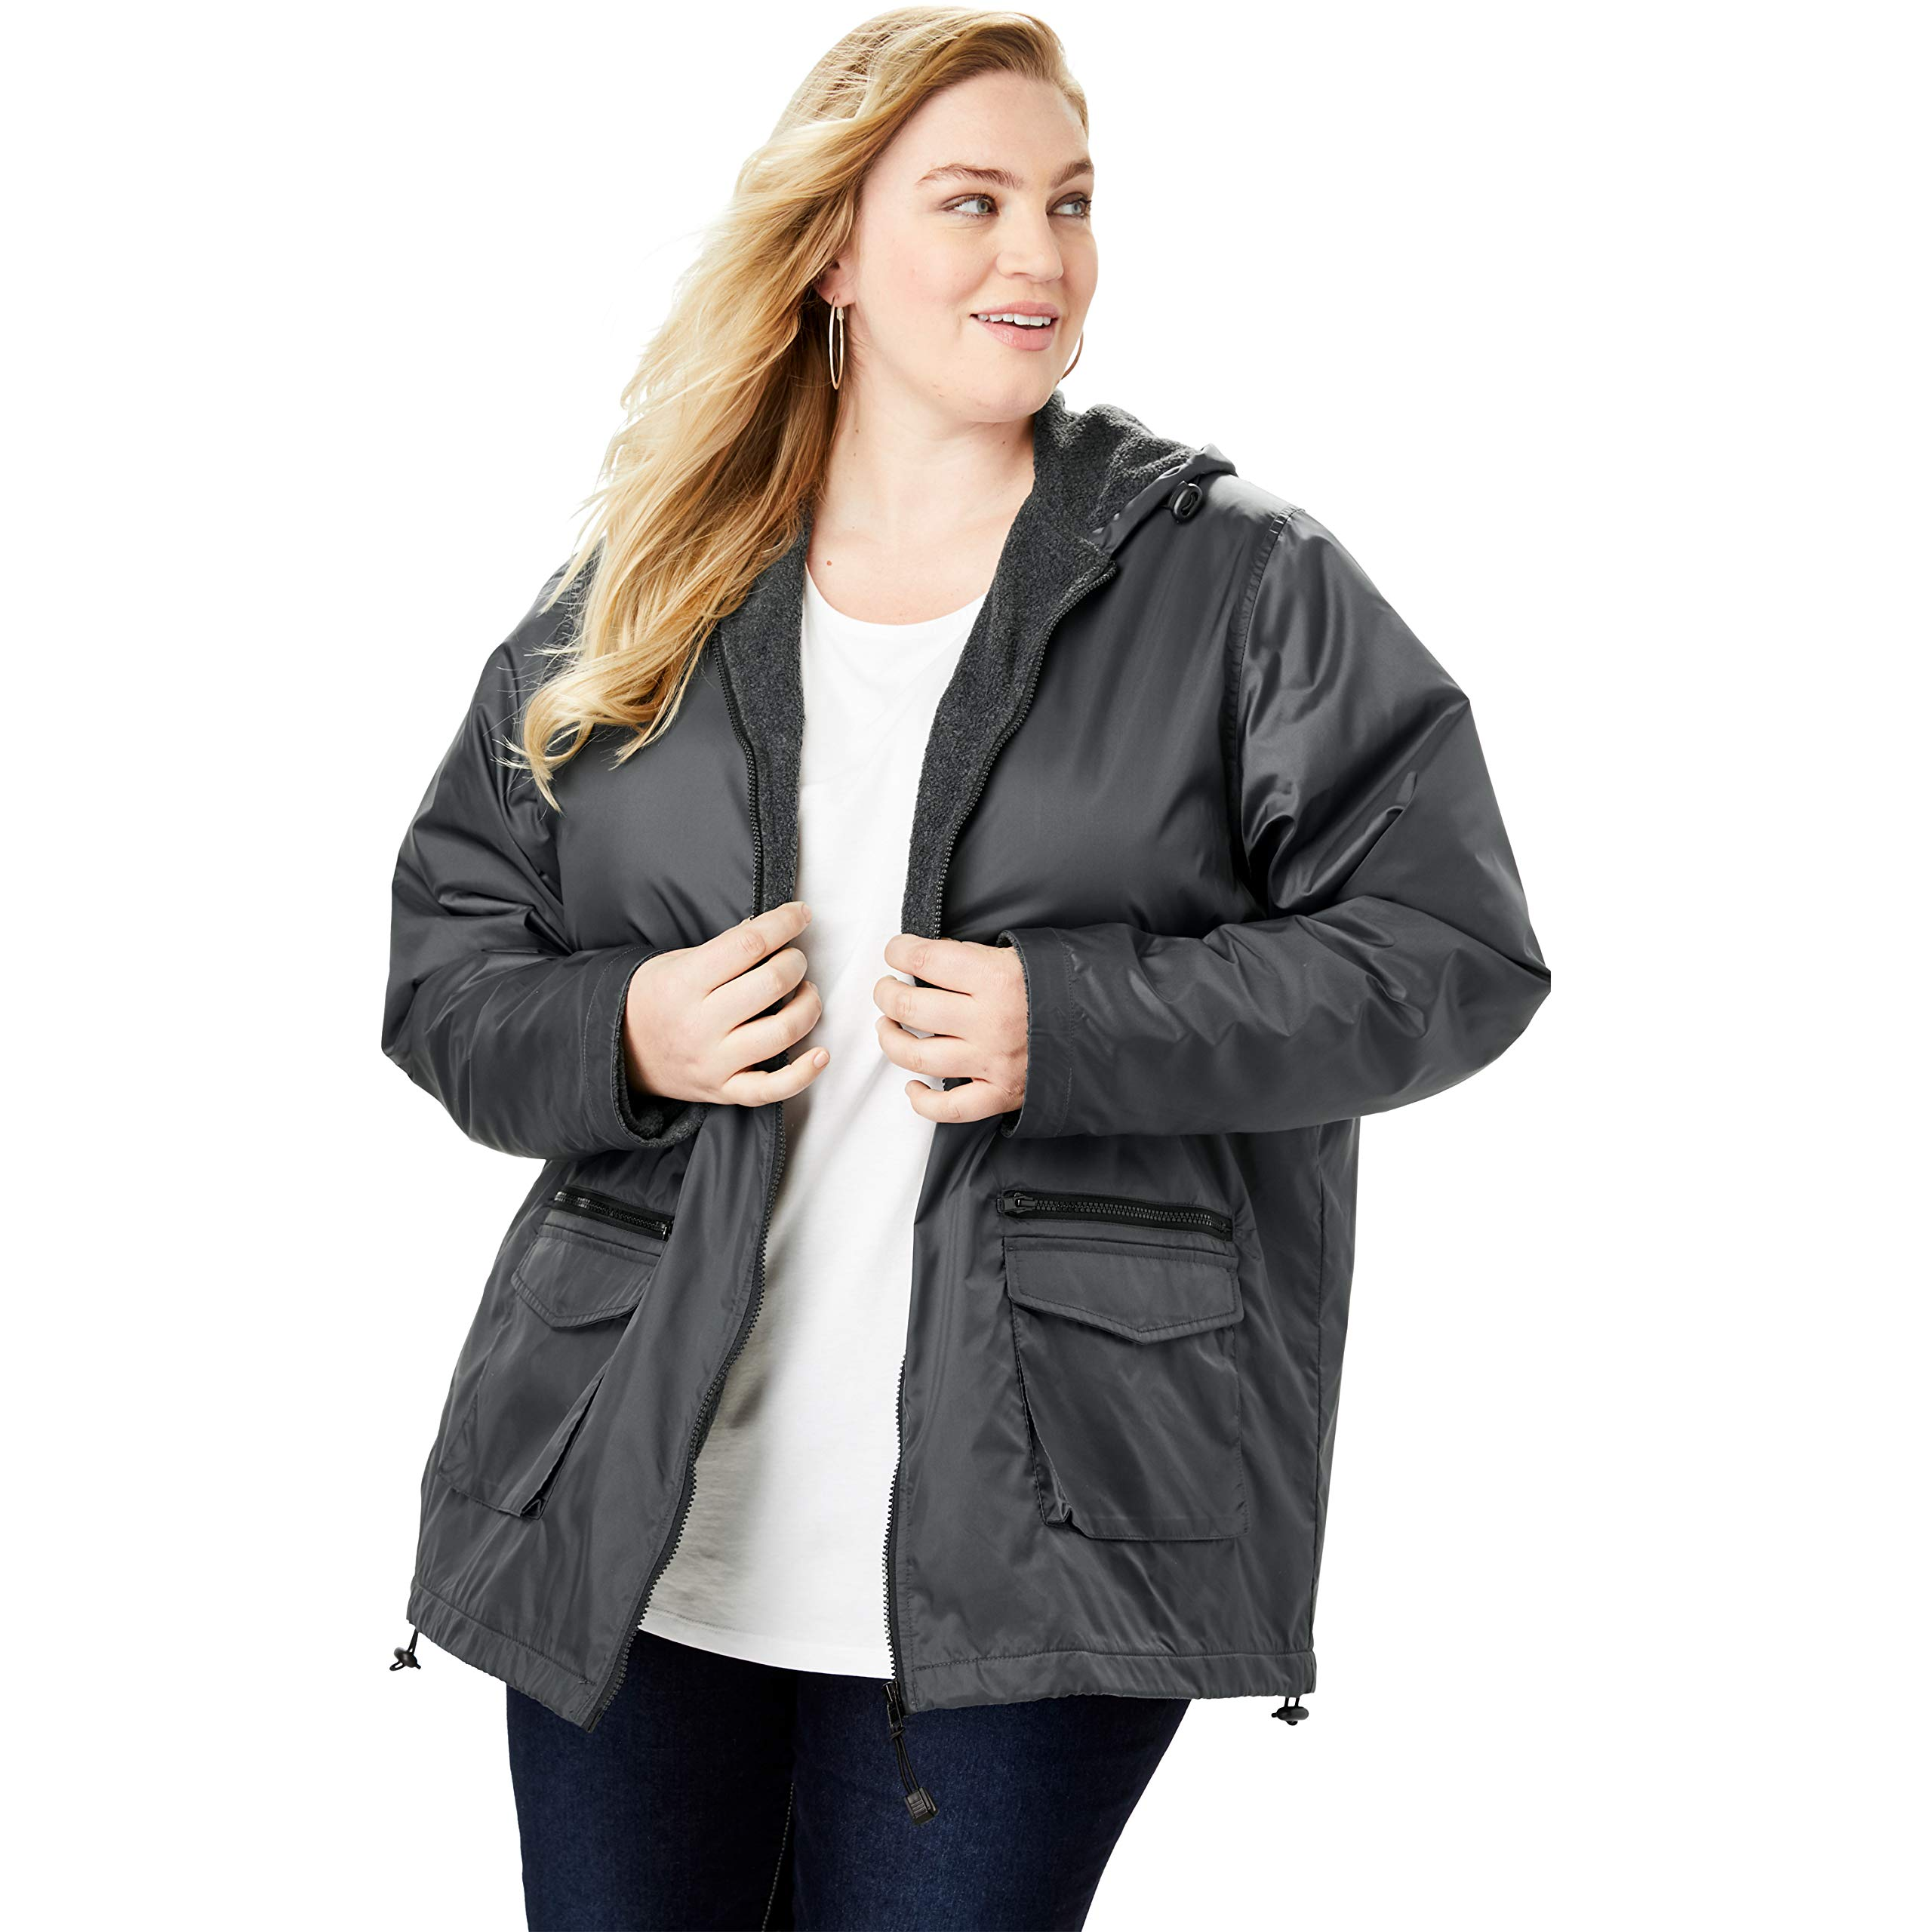 Roamans Women's Plus Size Hooded Jacket with Fleece Lining - Dark Charcoal, 5X by Roamans